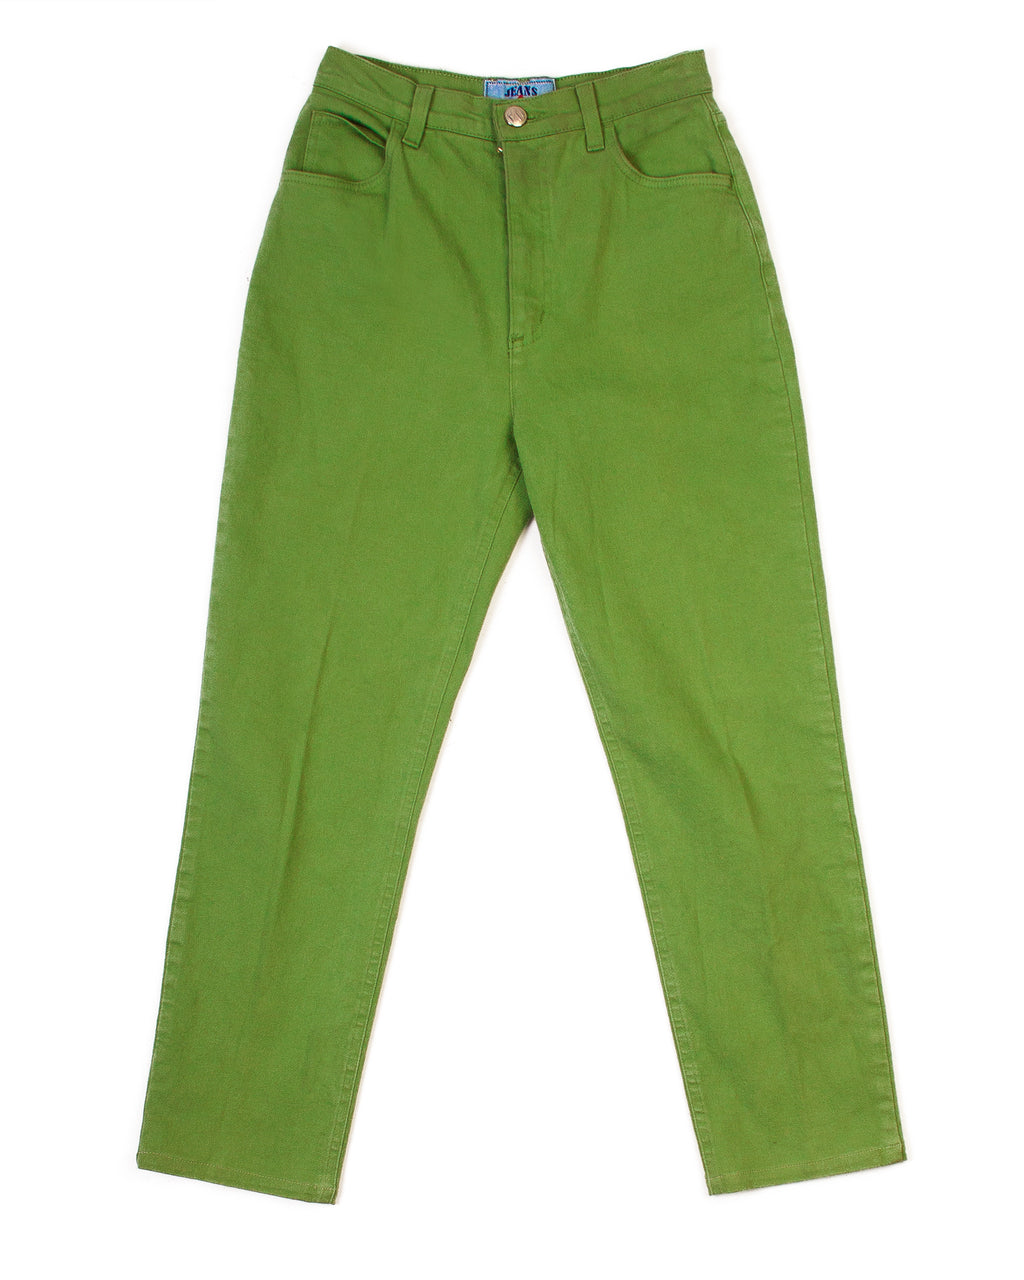 PEA GREEN STRAIGHT LEG JEANS